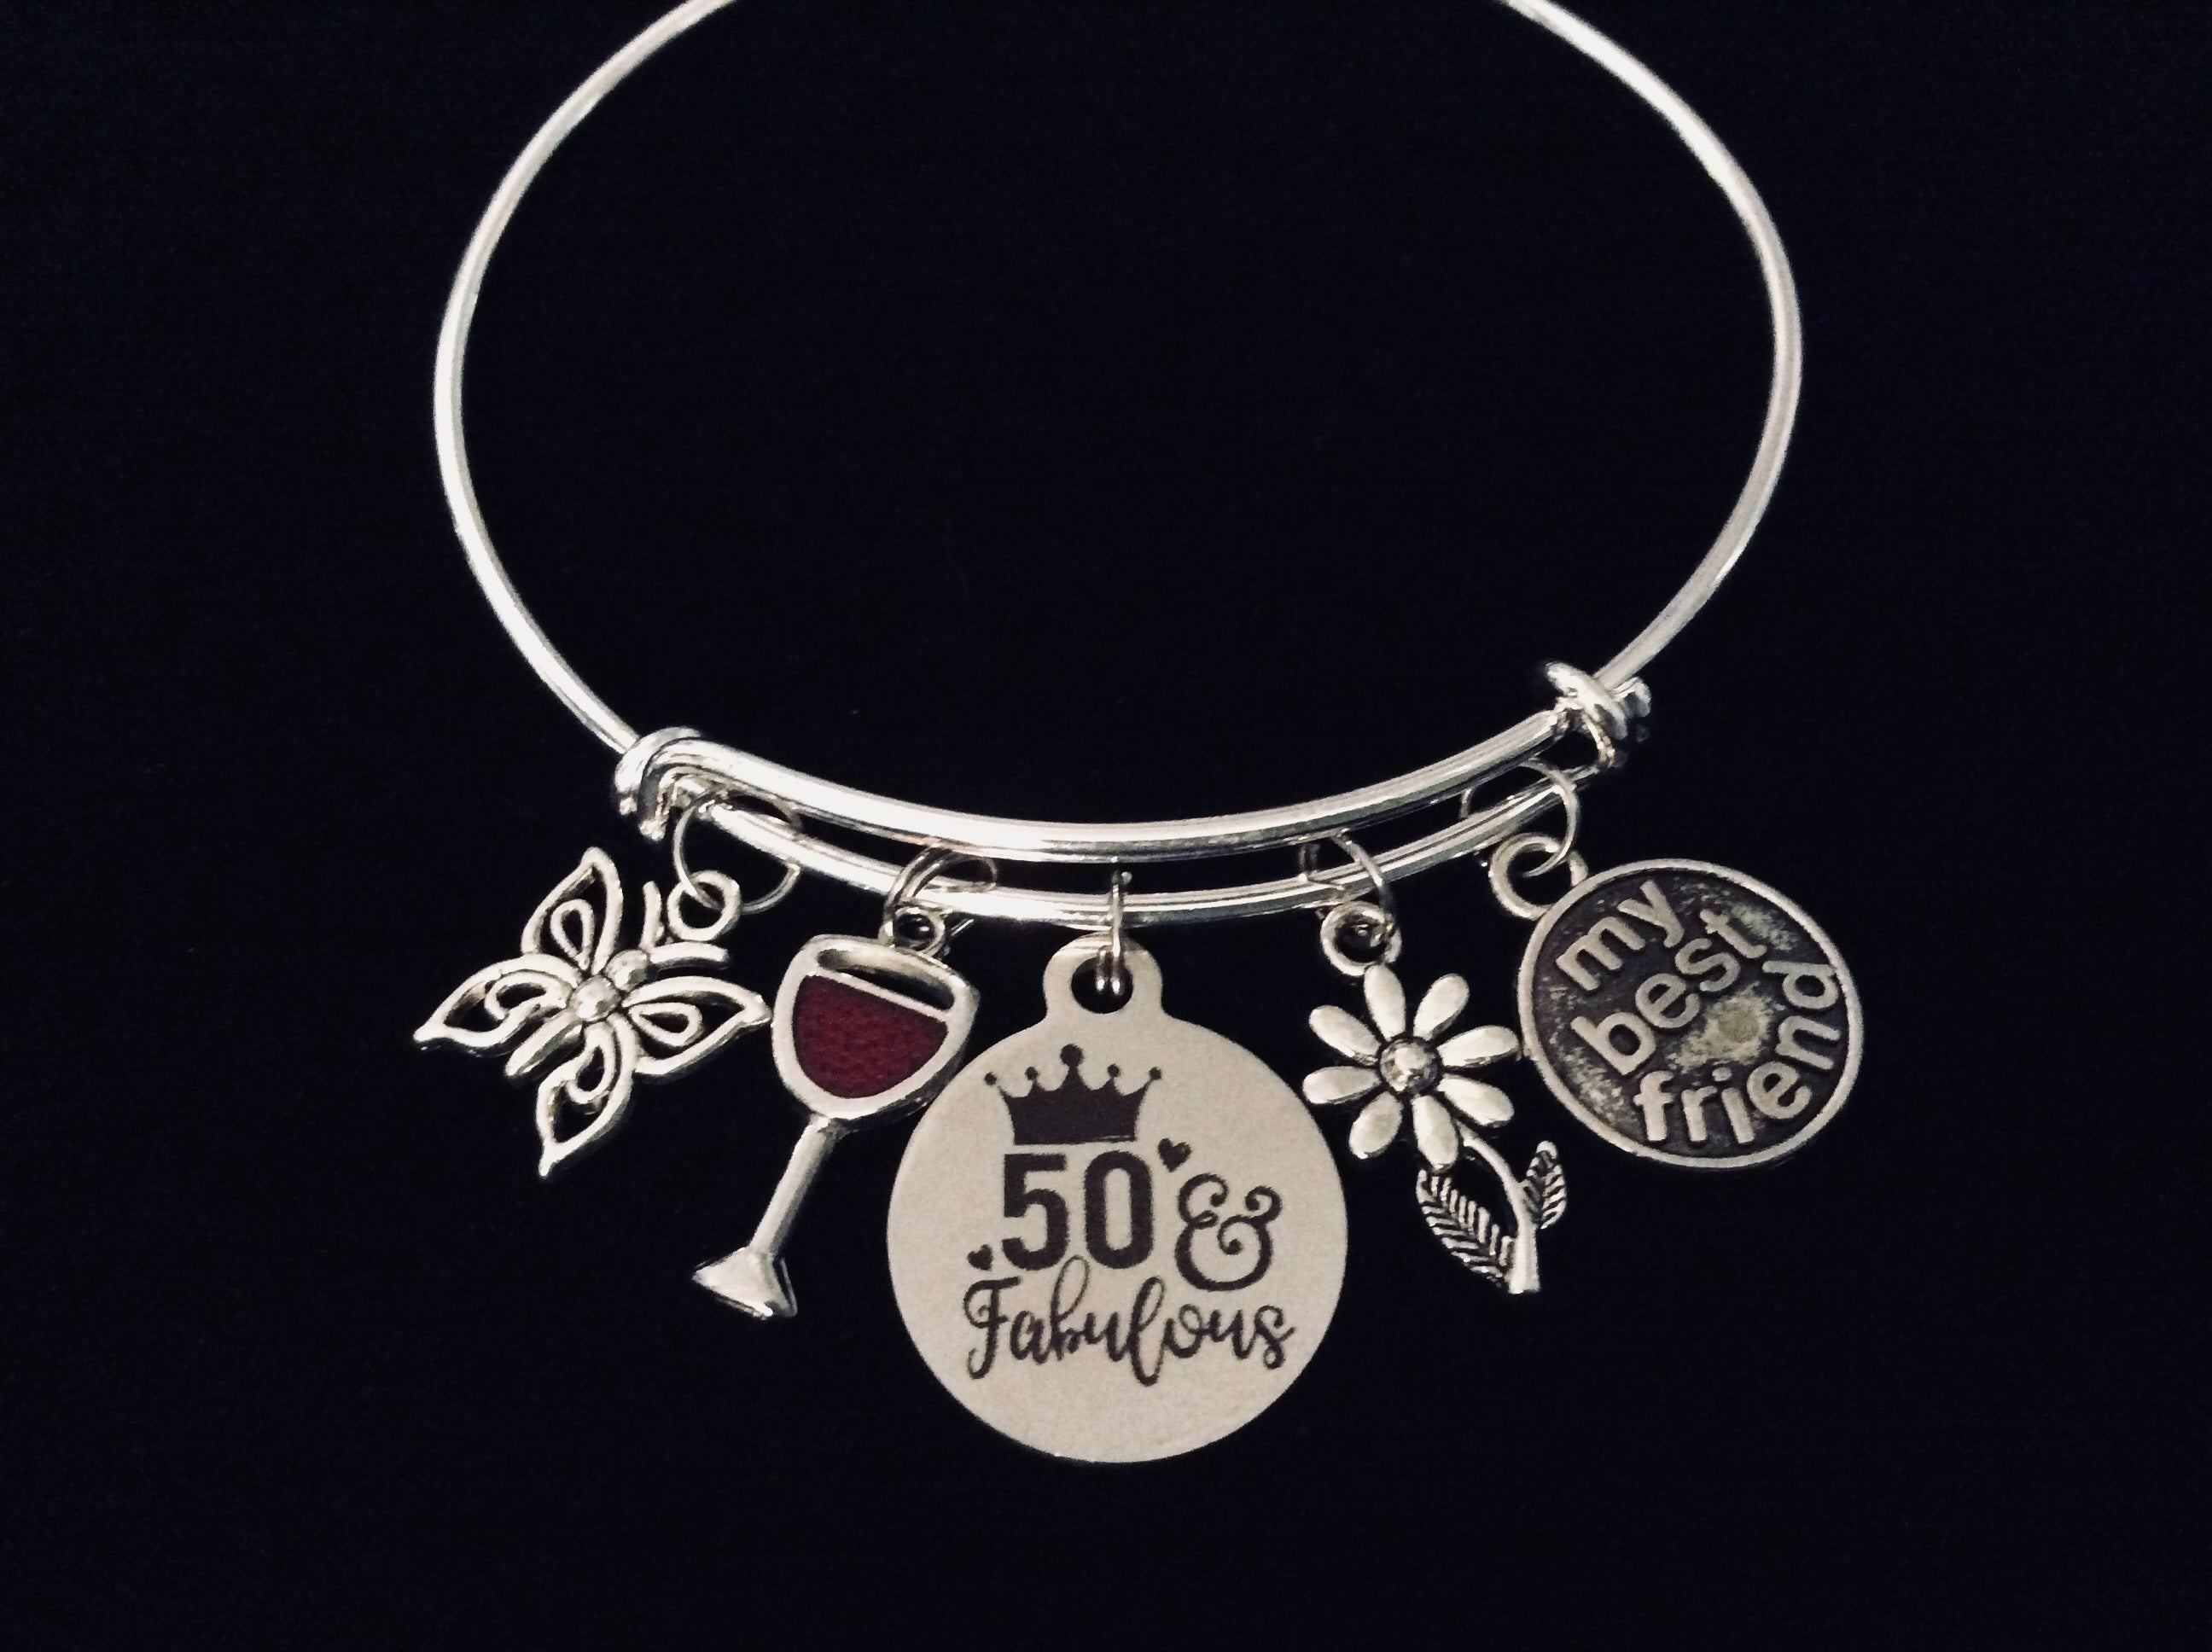 My Best Friend Fifty And Fabulous 50th Birthday Jewelry Adjustable Charm Bracelet Silver Expandable Bangle One